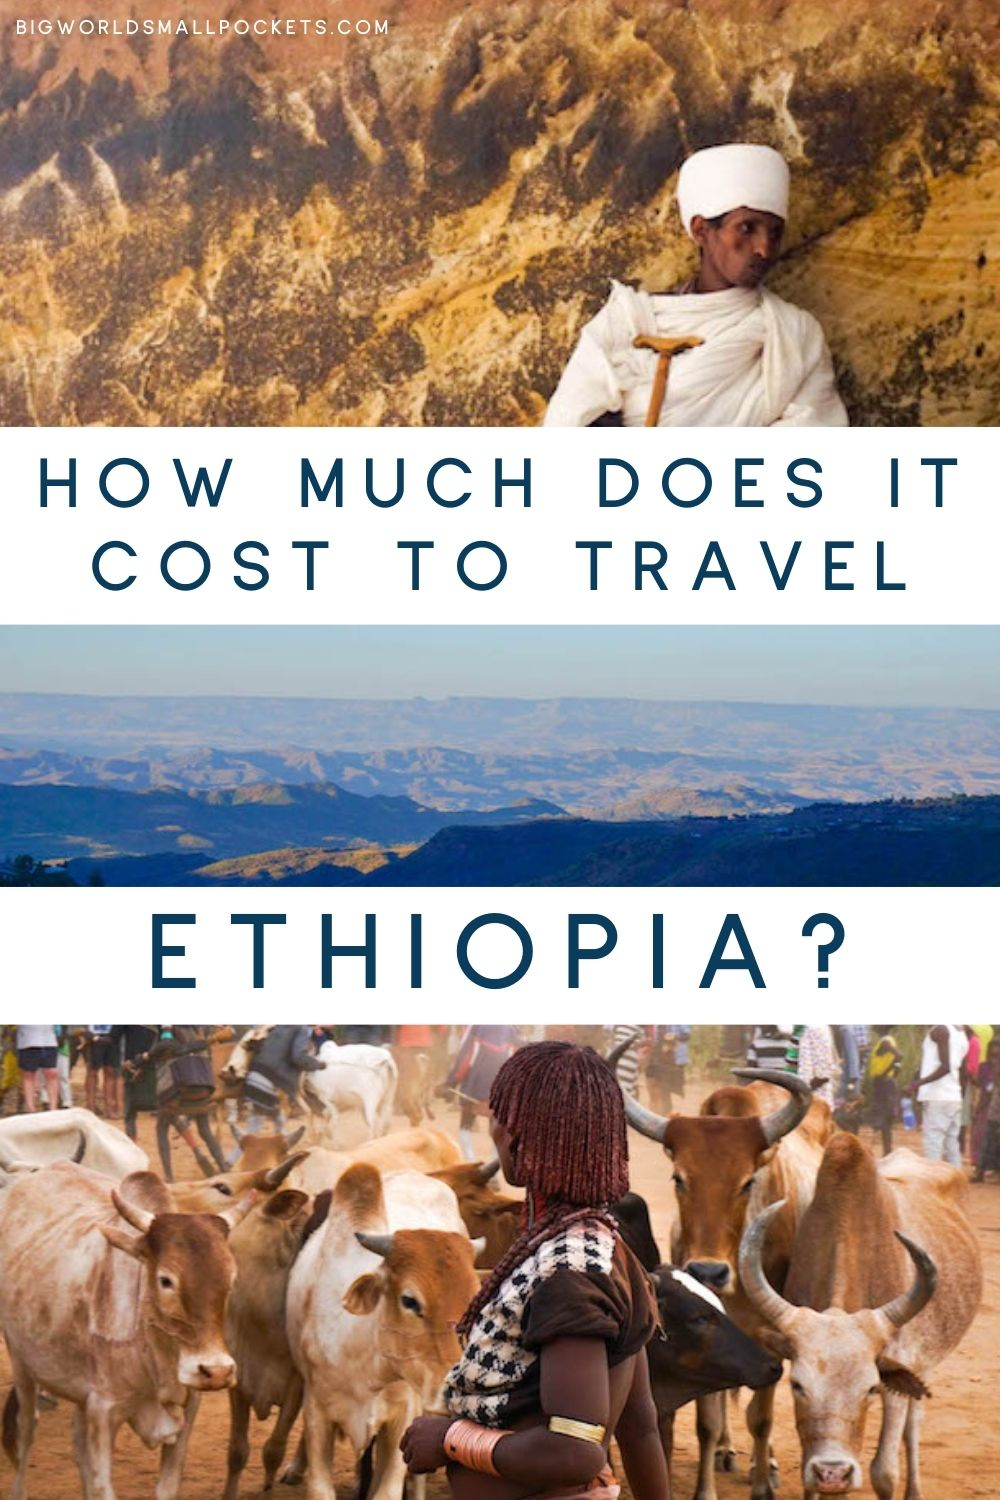 How Much Does a Trip to Ethiopia Cost?